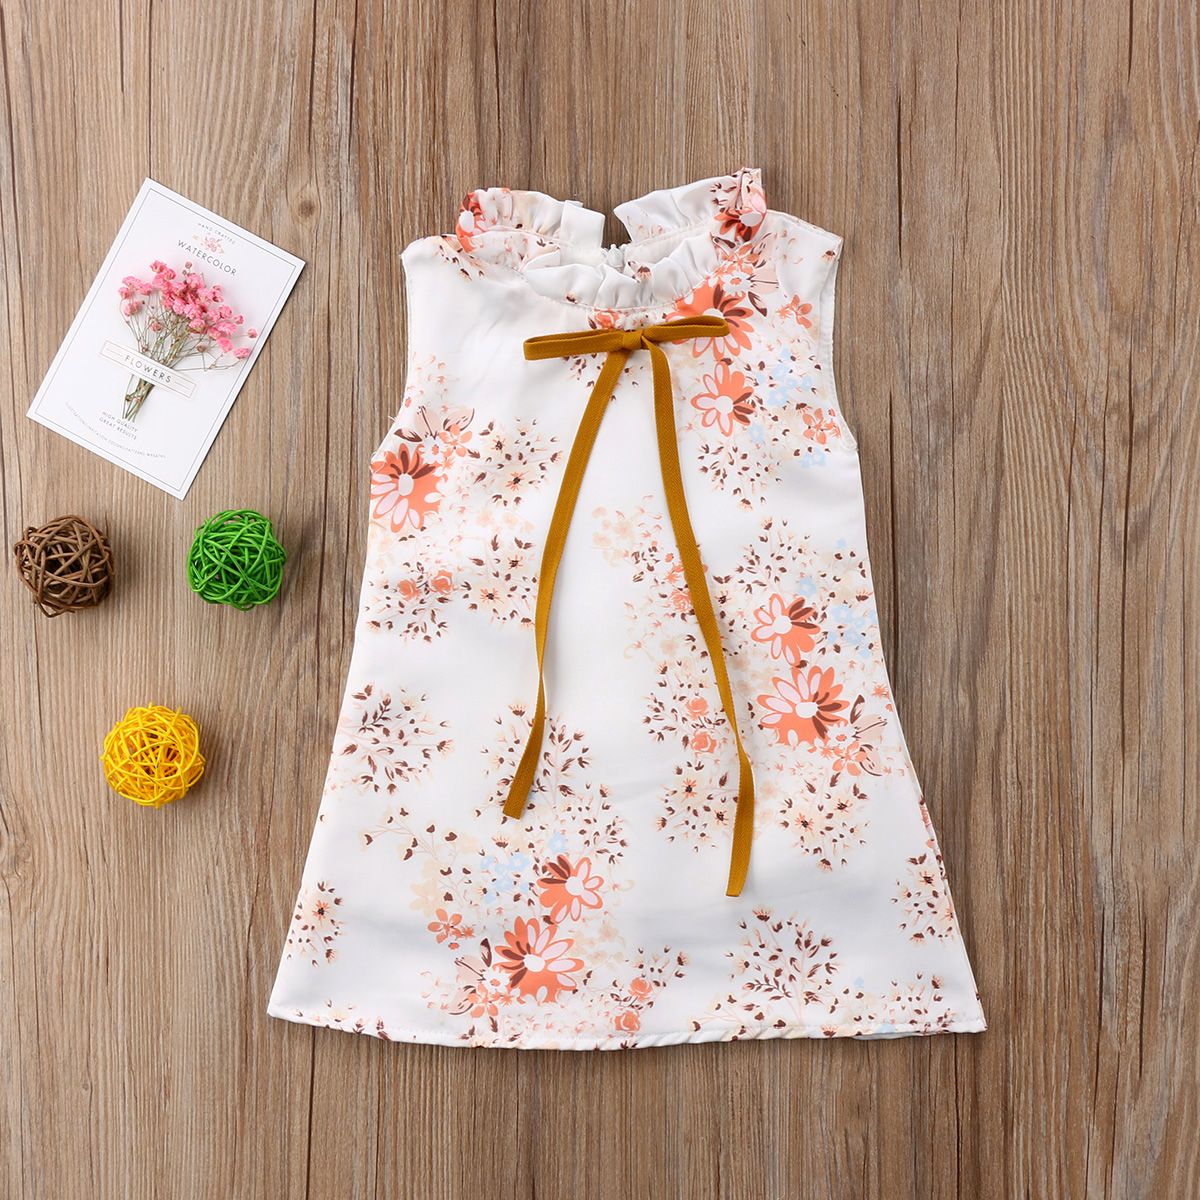 2018 FOCUSNORM Cute Toddler Kids Baby Girls Princess Sleeveless Floral  Ribbons Dress Party Clothes Summer